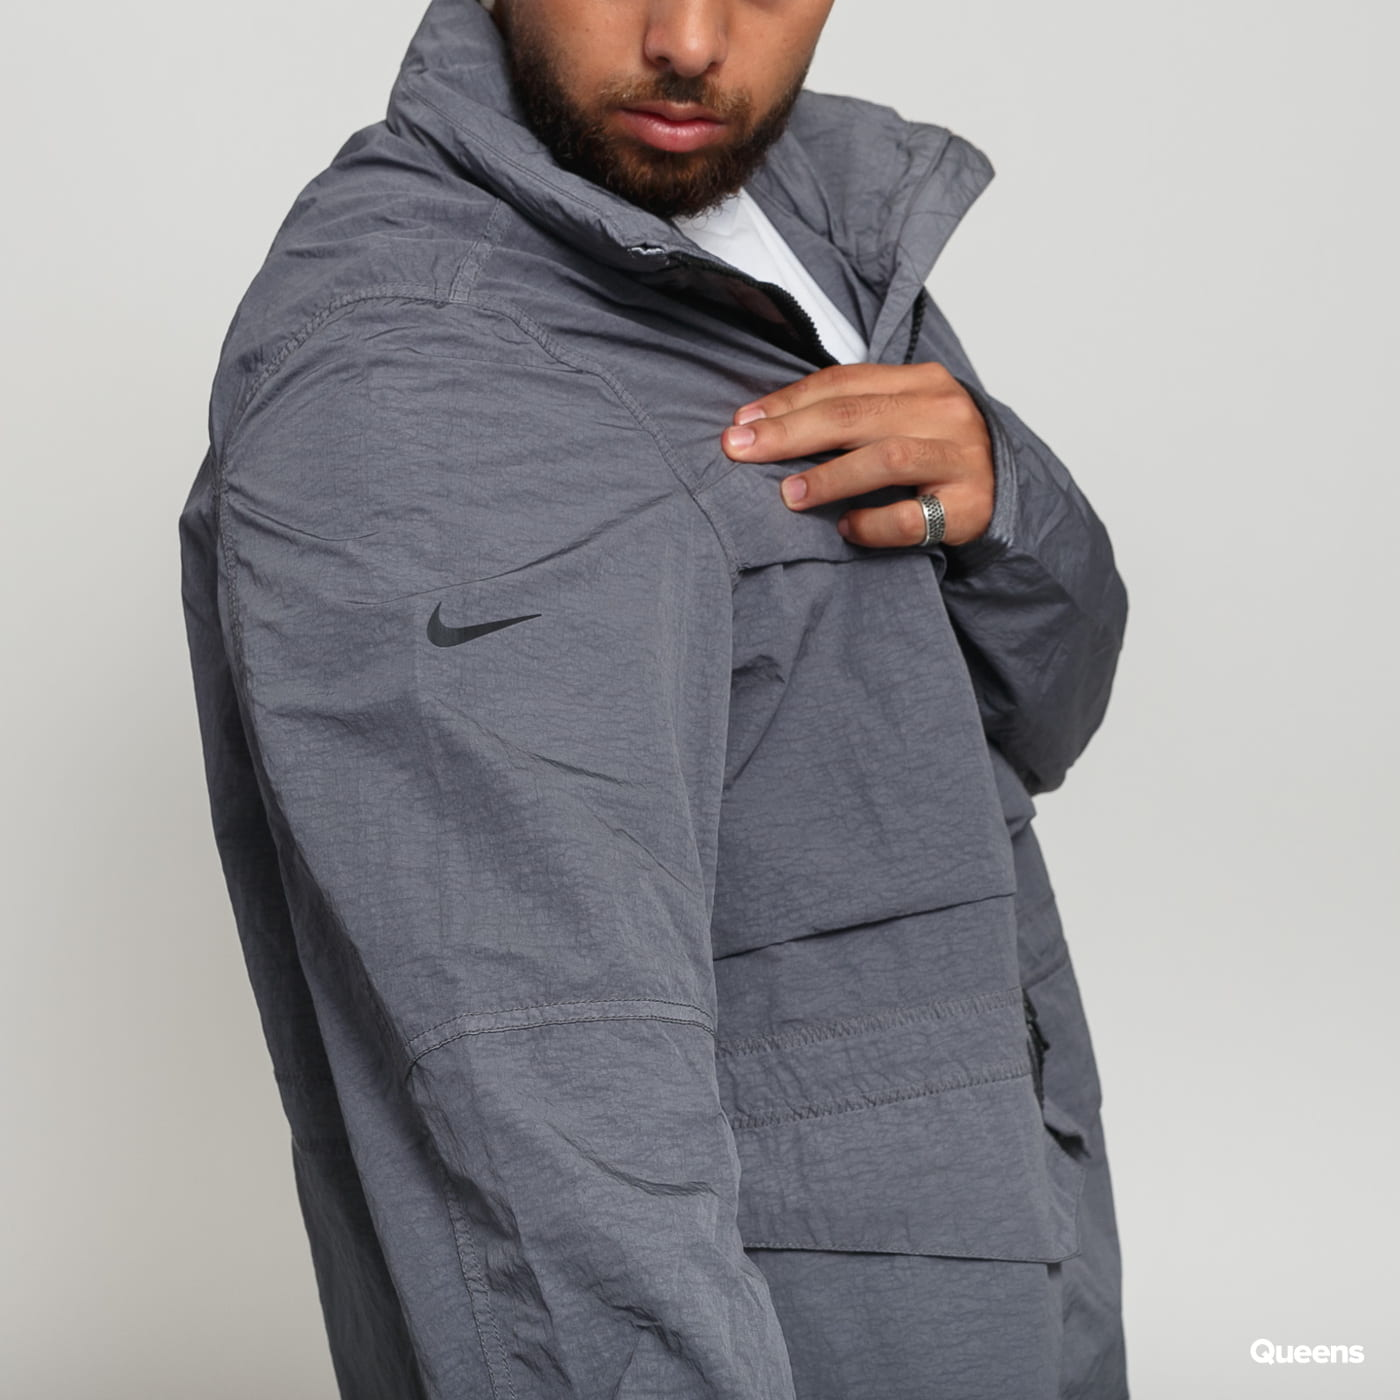 Nike M NSW Tech Pack Jacket Dye dark gray